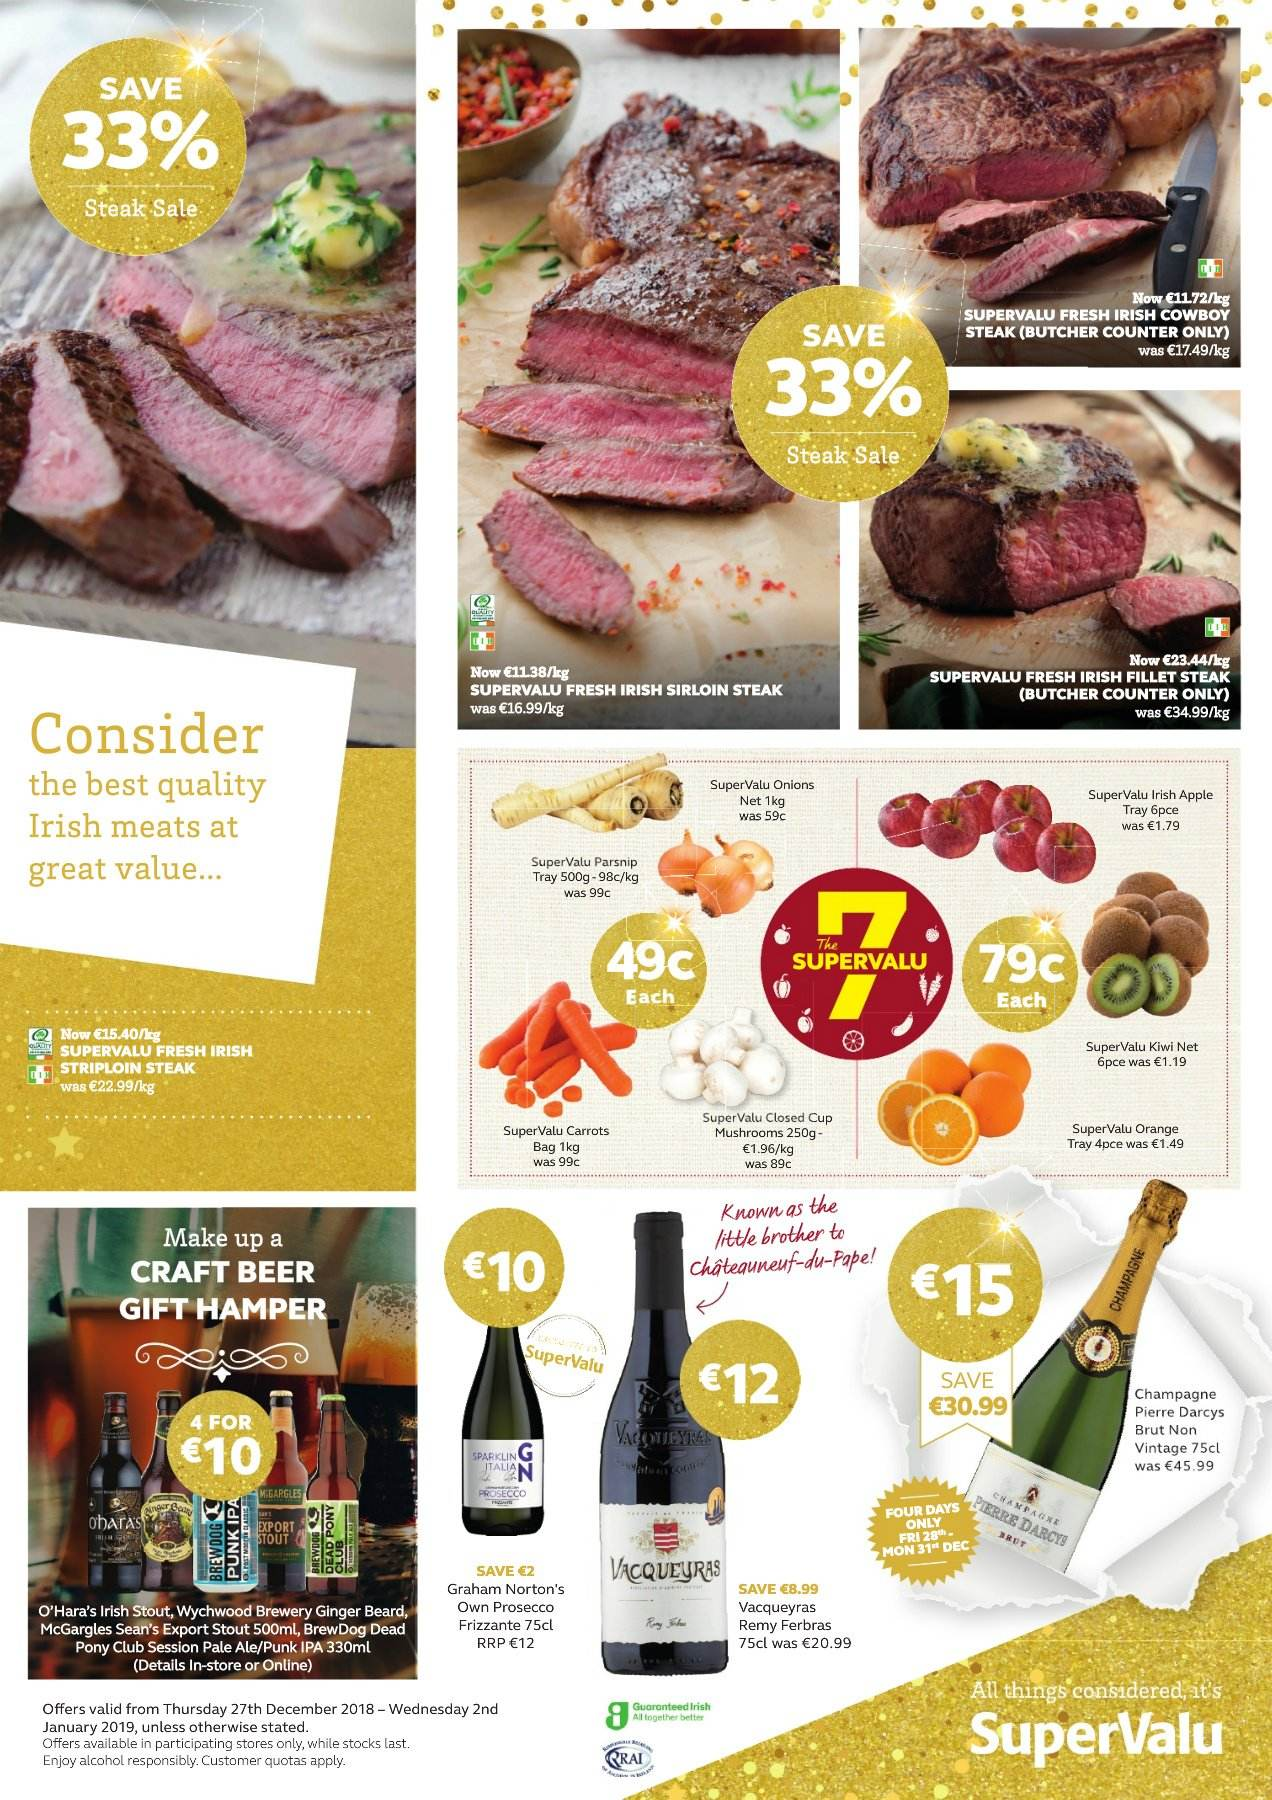 SuperValu offer  - 27.12.2018 - 2.1.2019 - Sales products - mushroom, Great Value, carrots, ginger, onion, kiwi, orange, hamper, prosecco, alcohol, beer, IPA, beef sirloin, steak, sirloin steak, striploin steak, Brut, Brother. Page 1.